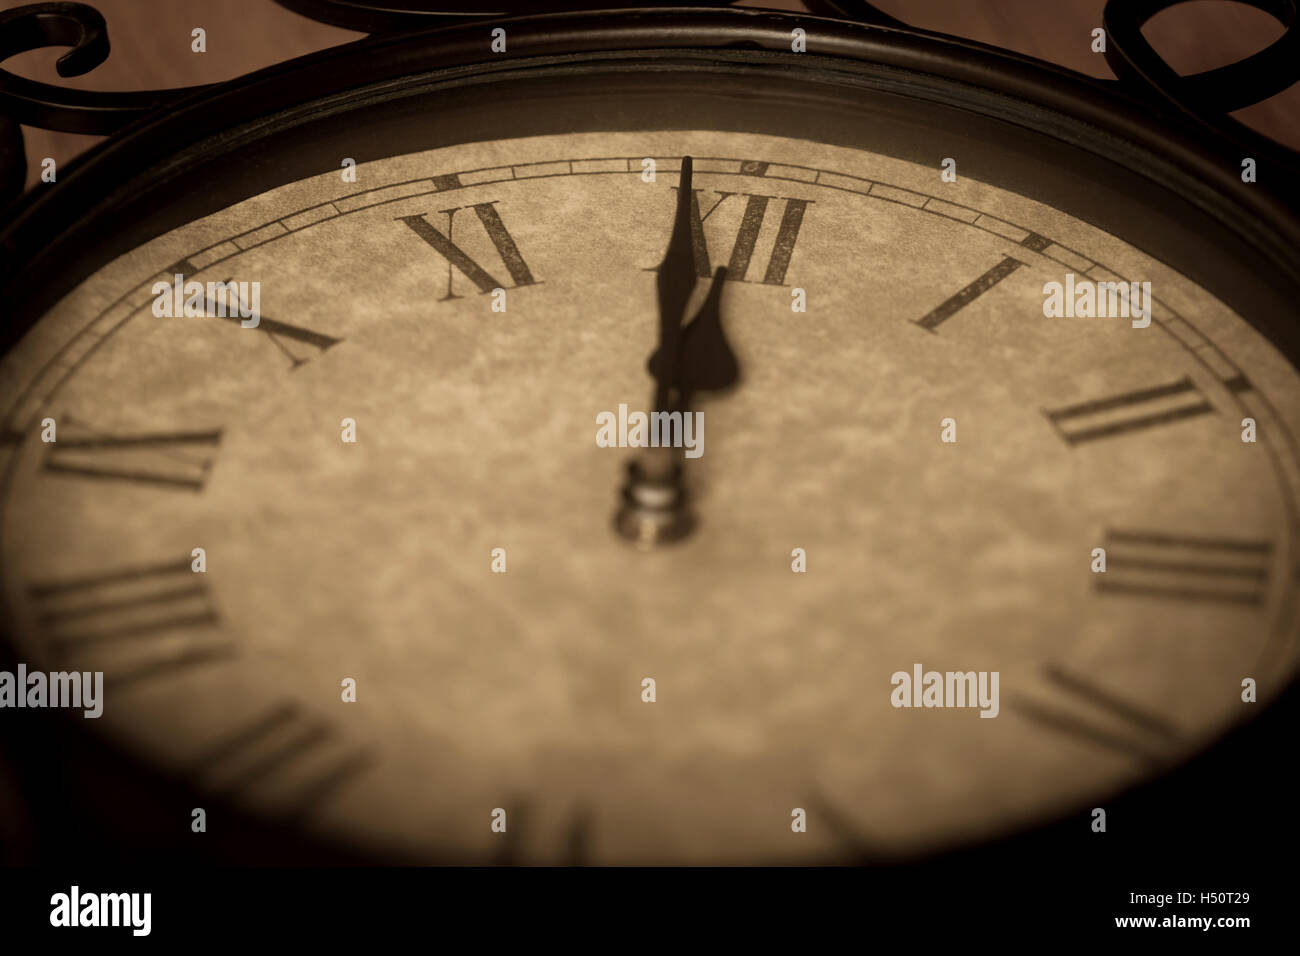 Antique clock showing minute to midnight with deliberate focus on the roman numeral 12 and shallow depth of field - Stock Image